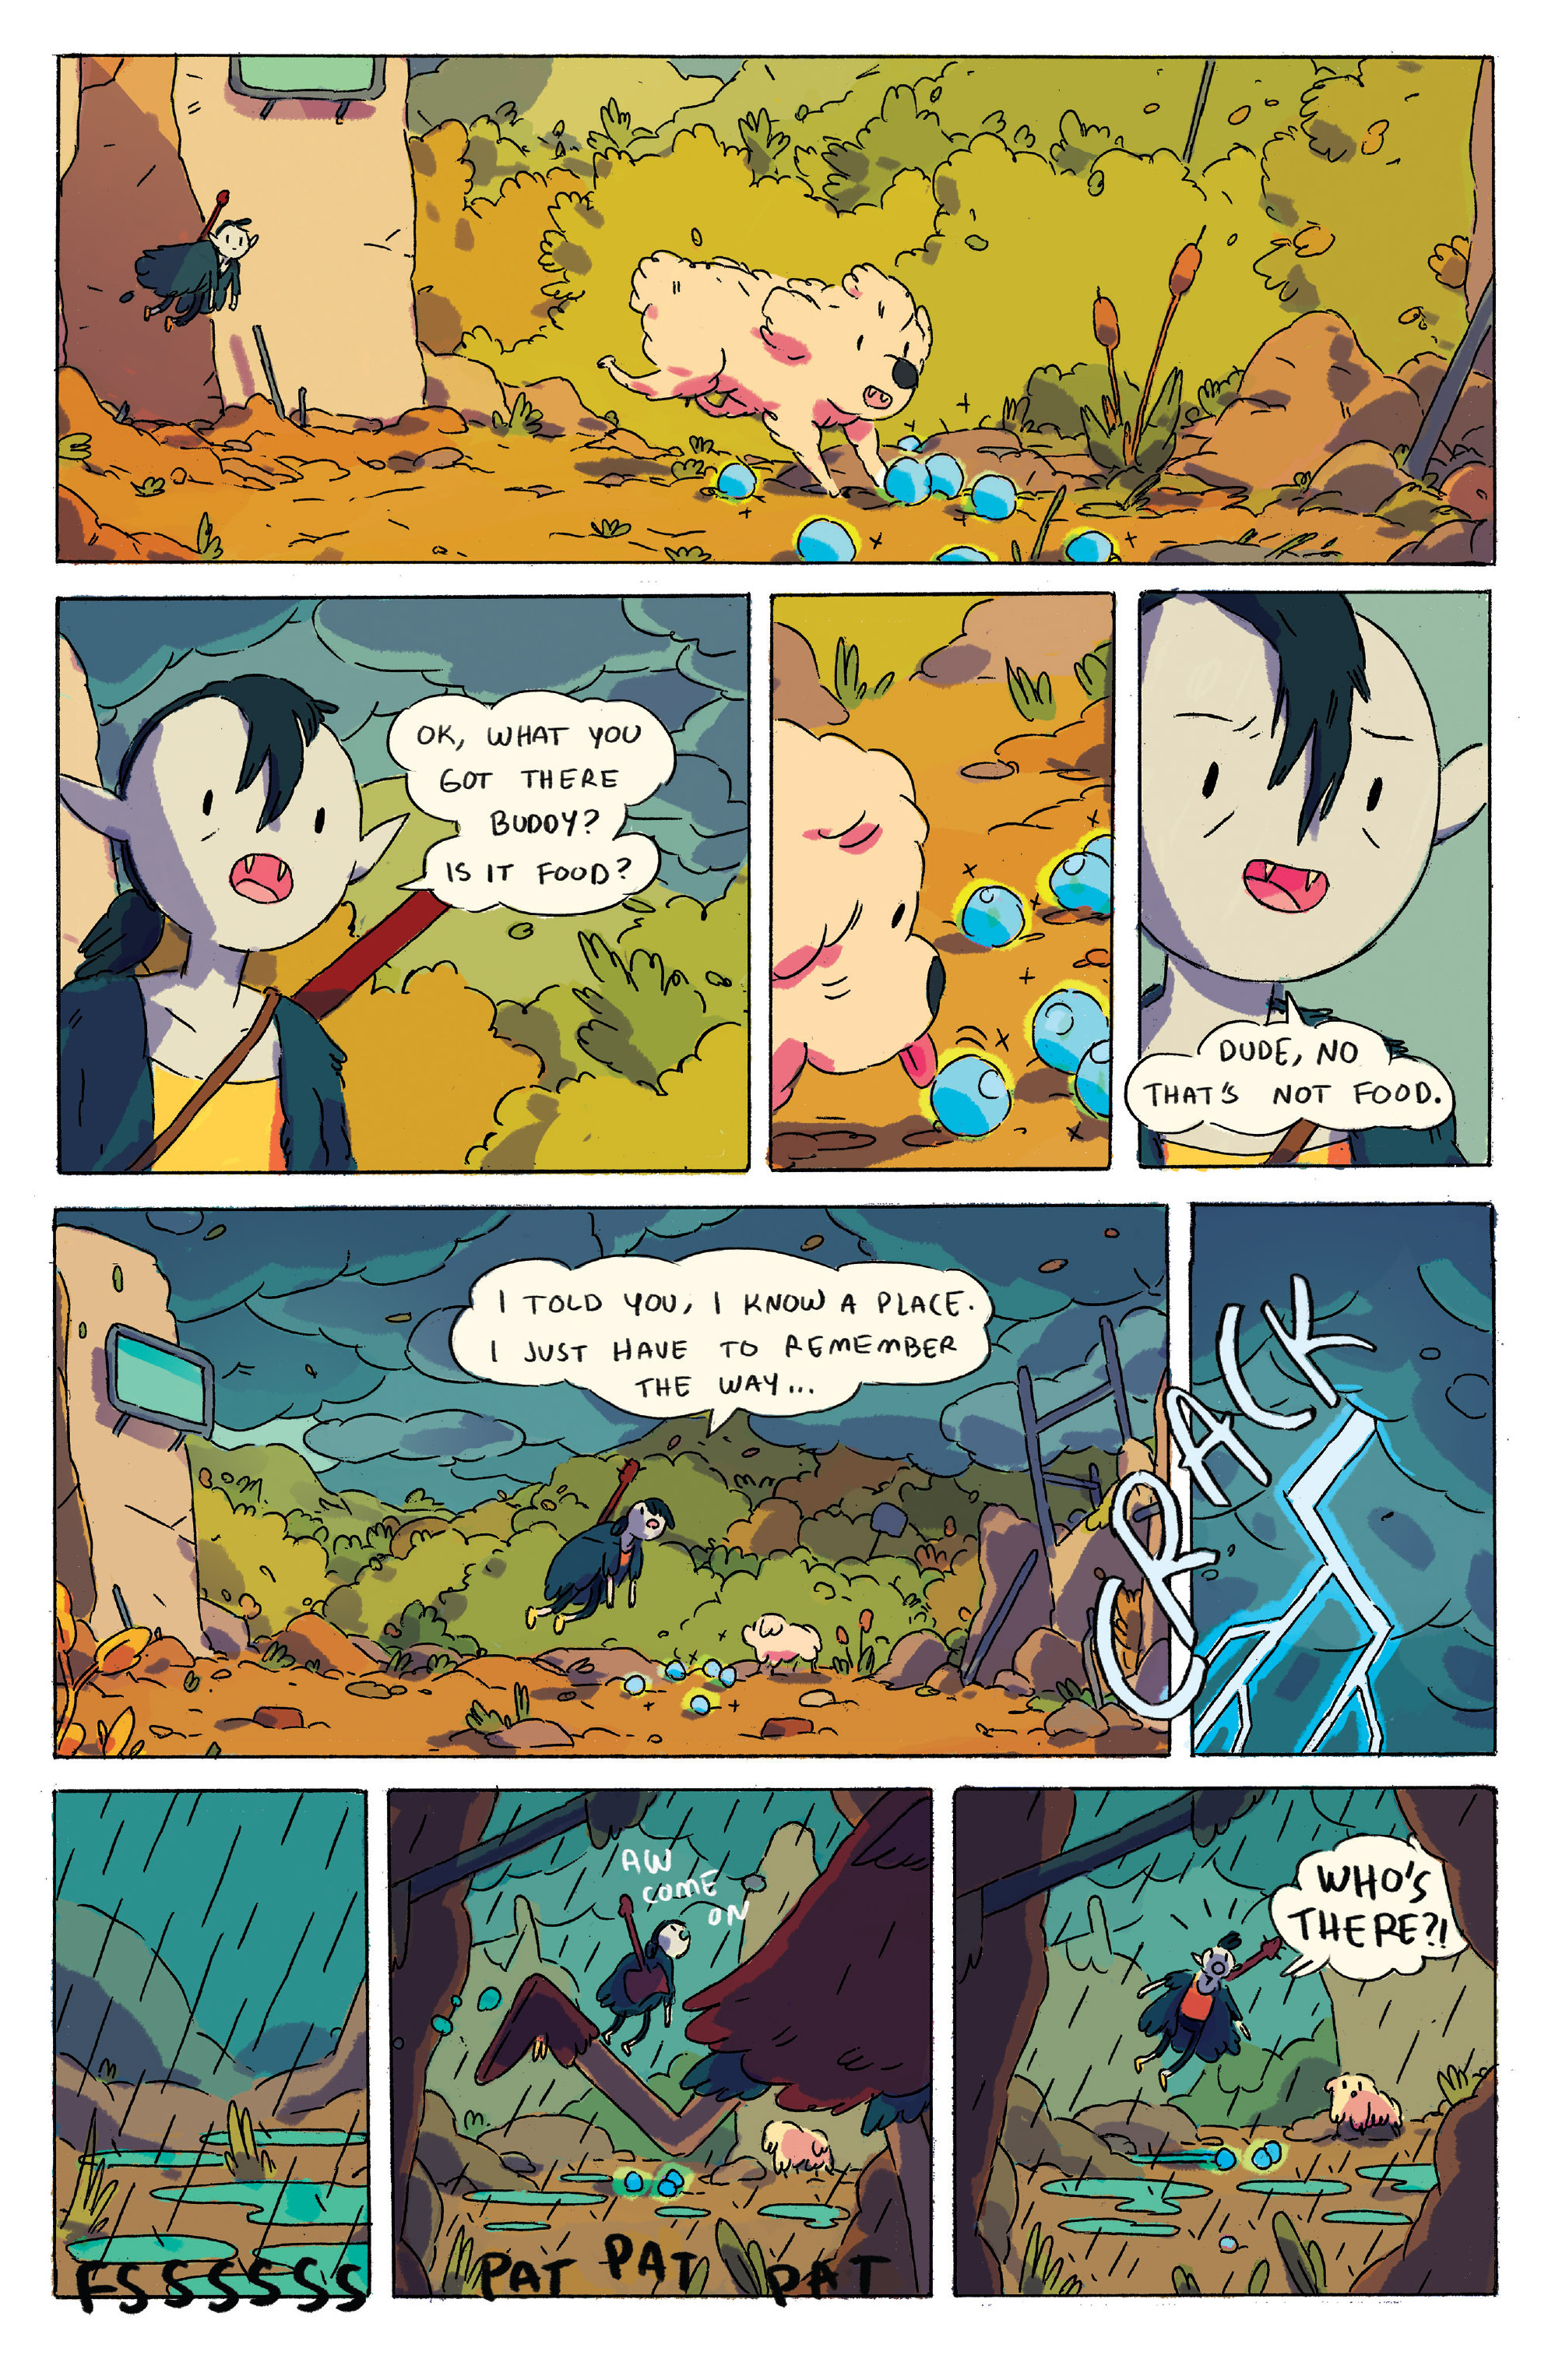 Read online Adventure Time comic -  Issue # _2015 Spoooktacular - 5